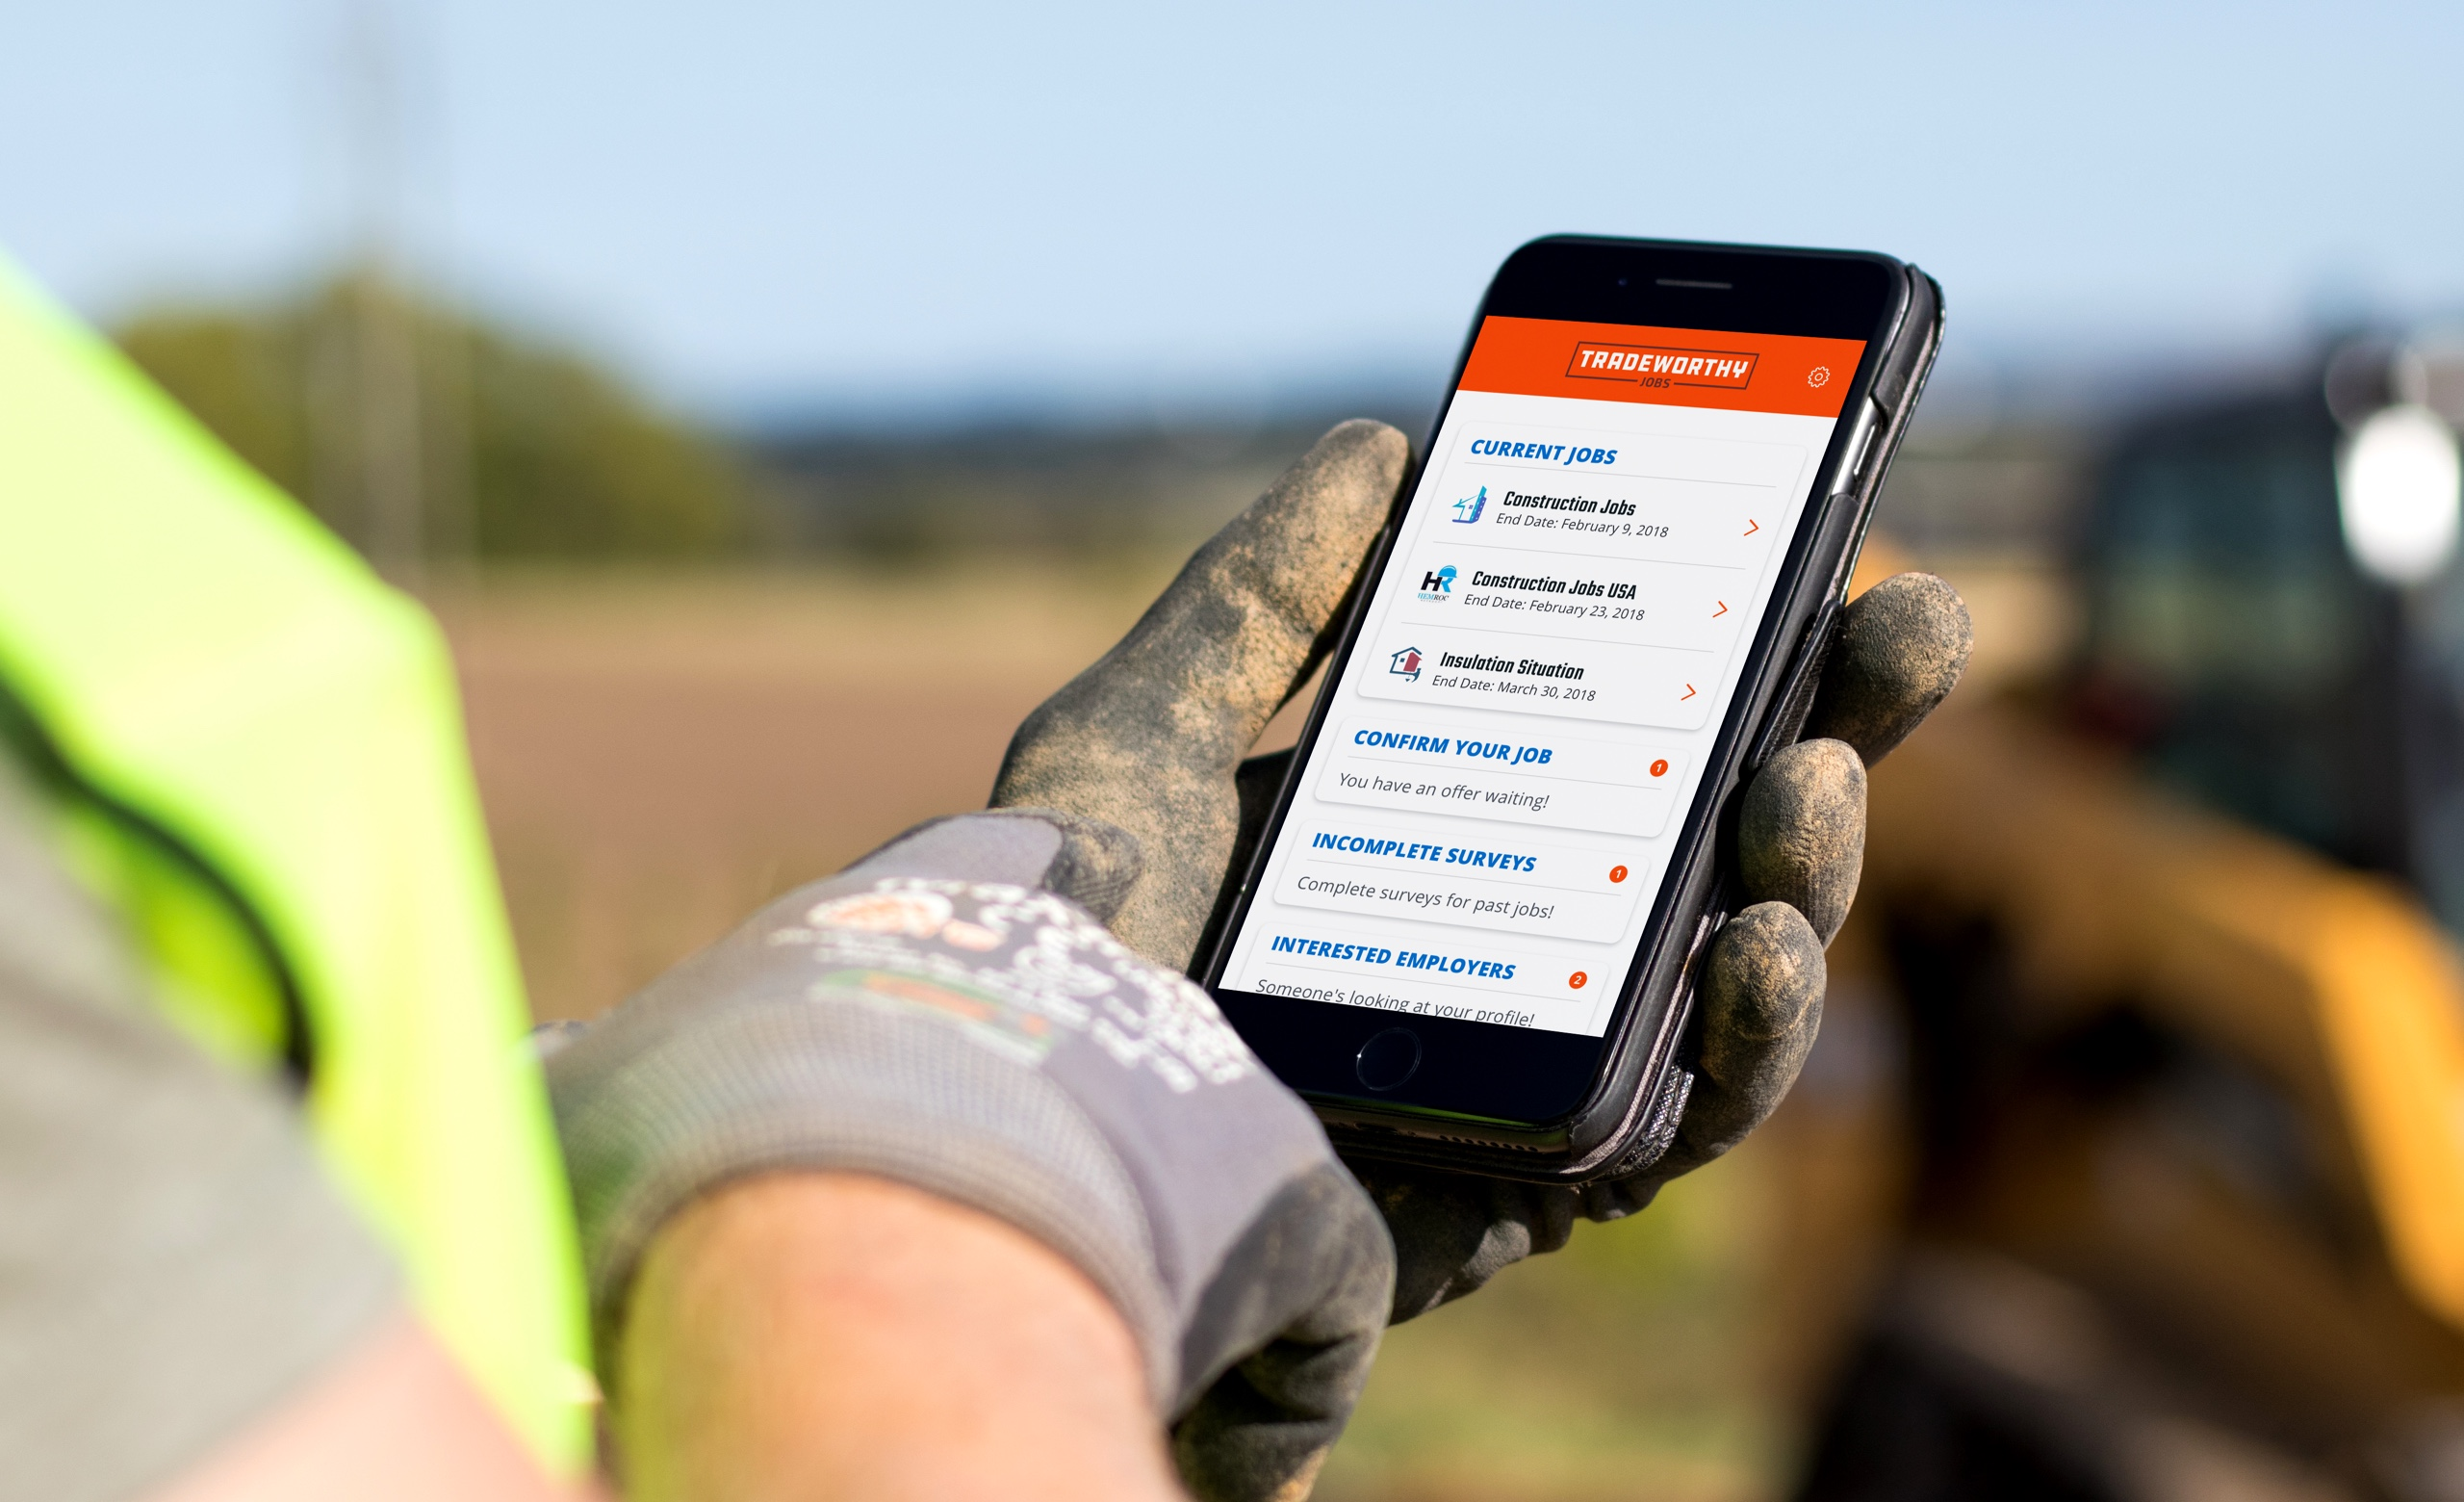 Construction worker on a construction site holding a cellphone with the Tradeworthy Jobs app pulled up on it.